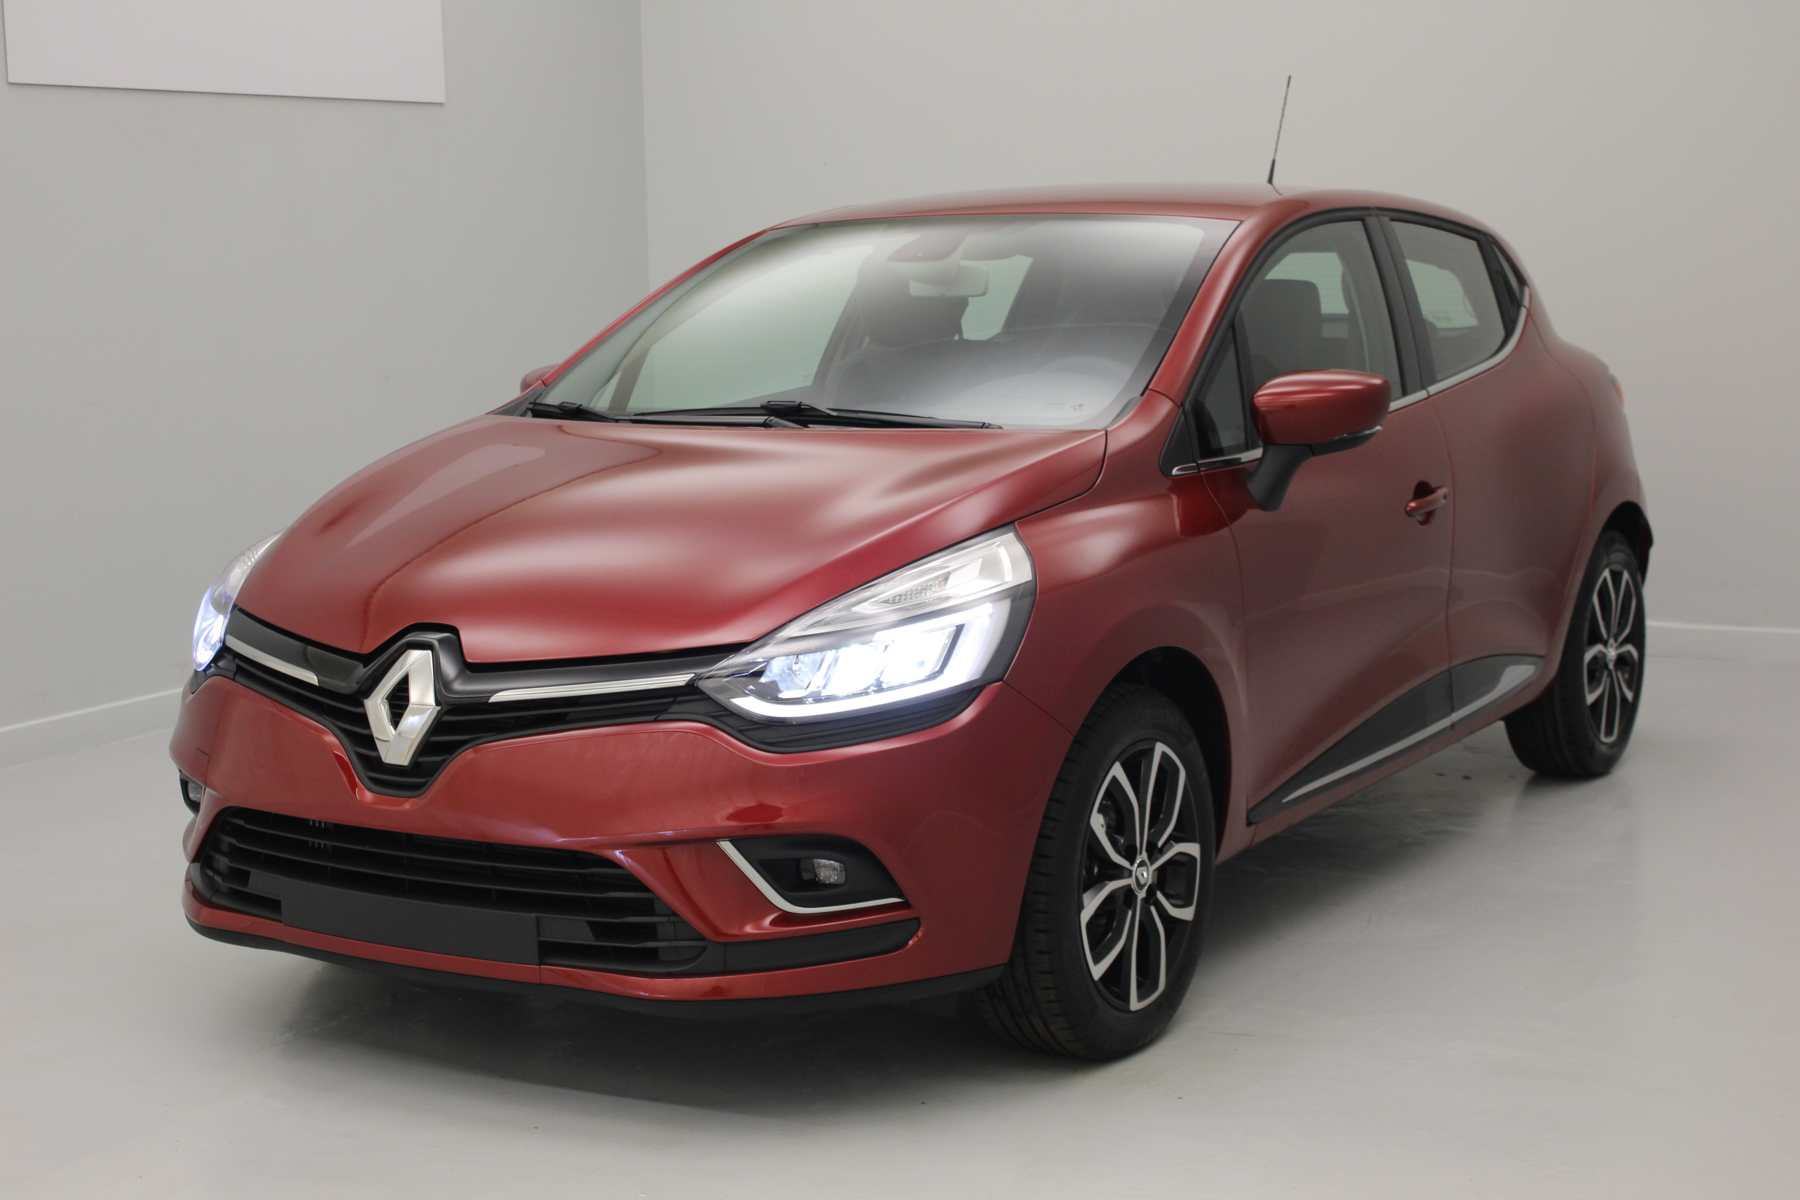 RENAULT Clio IV Nouvelle TCe 120 Energy Intens EDC - Rouge Intense avec options